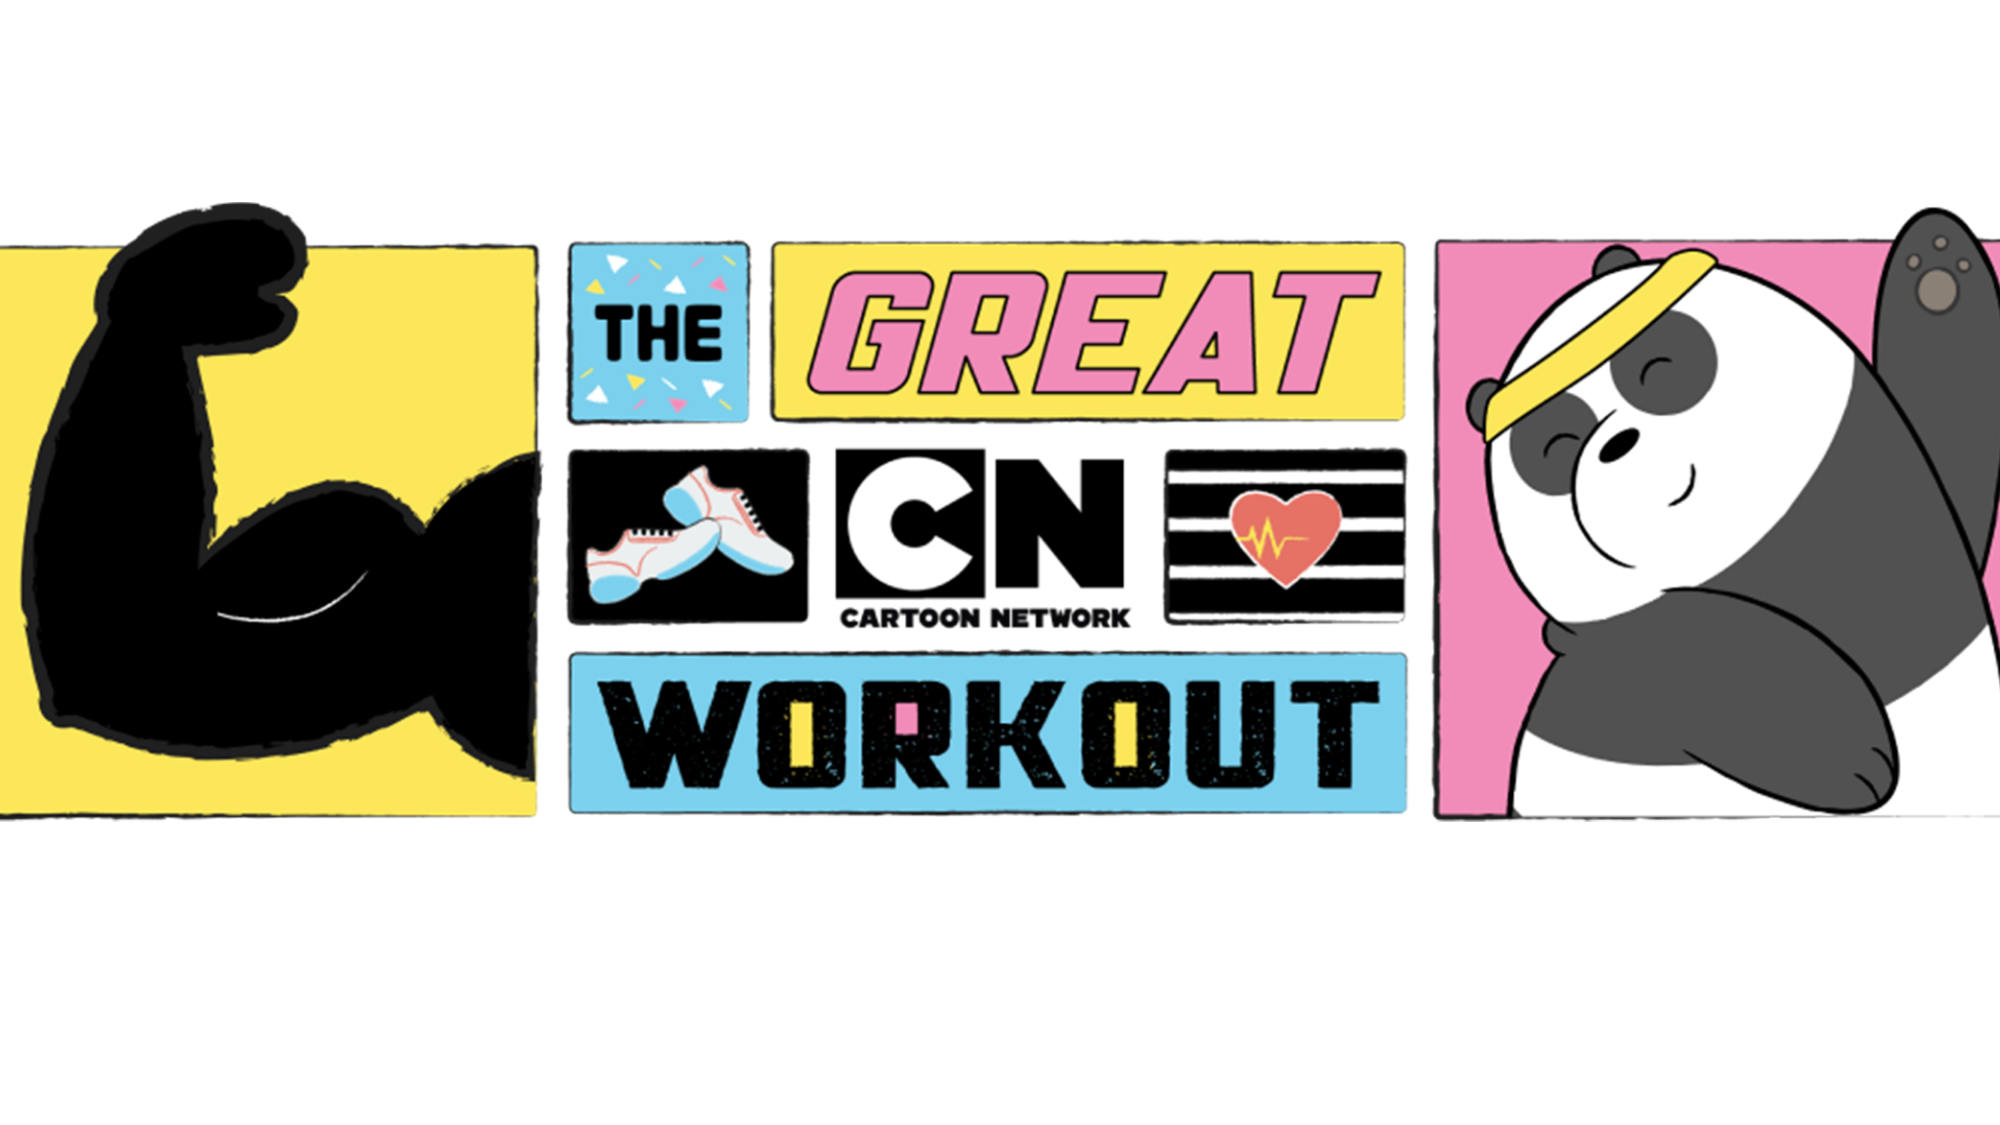 Get fit with the Cartoon Network workout photo The Great CN Workout